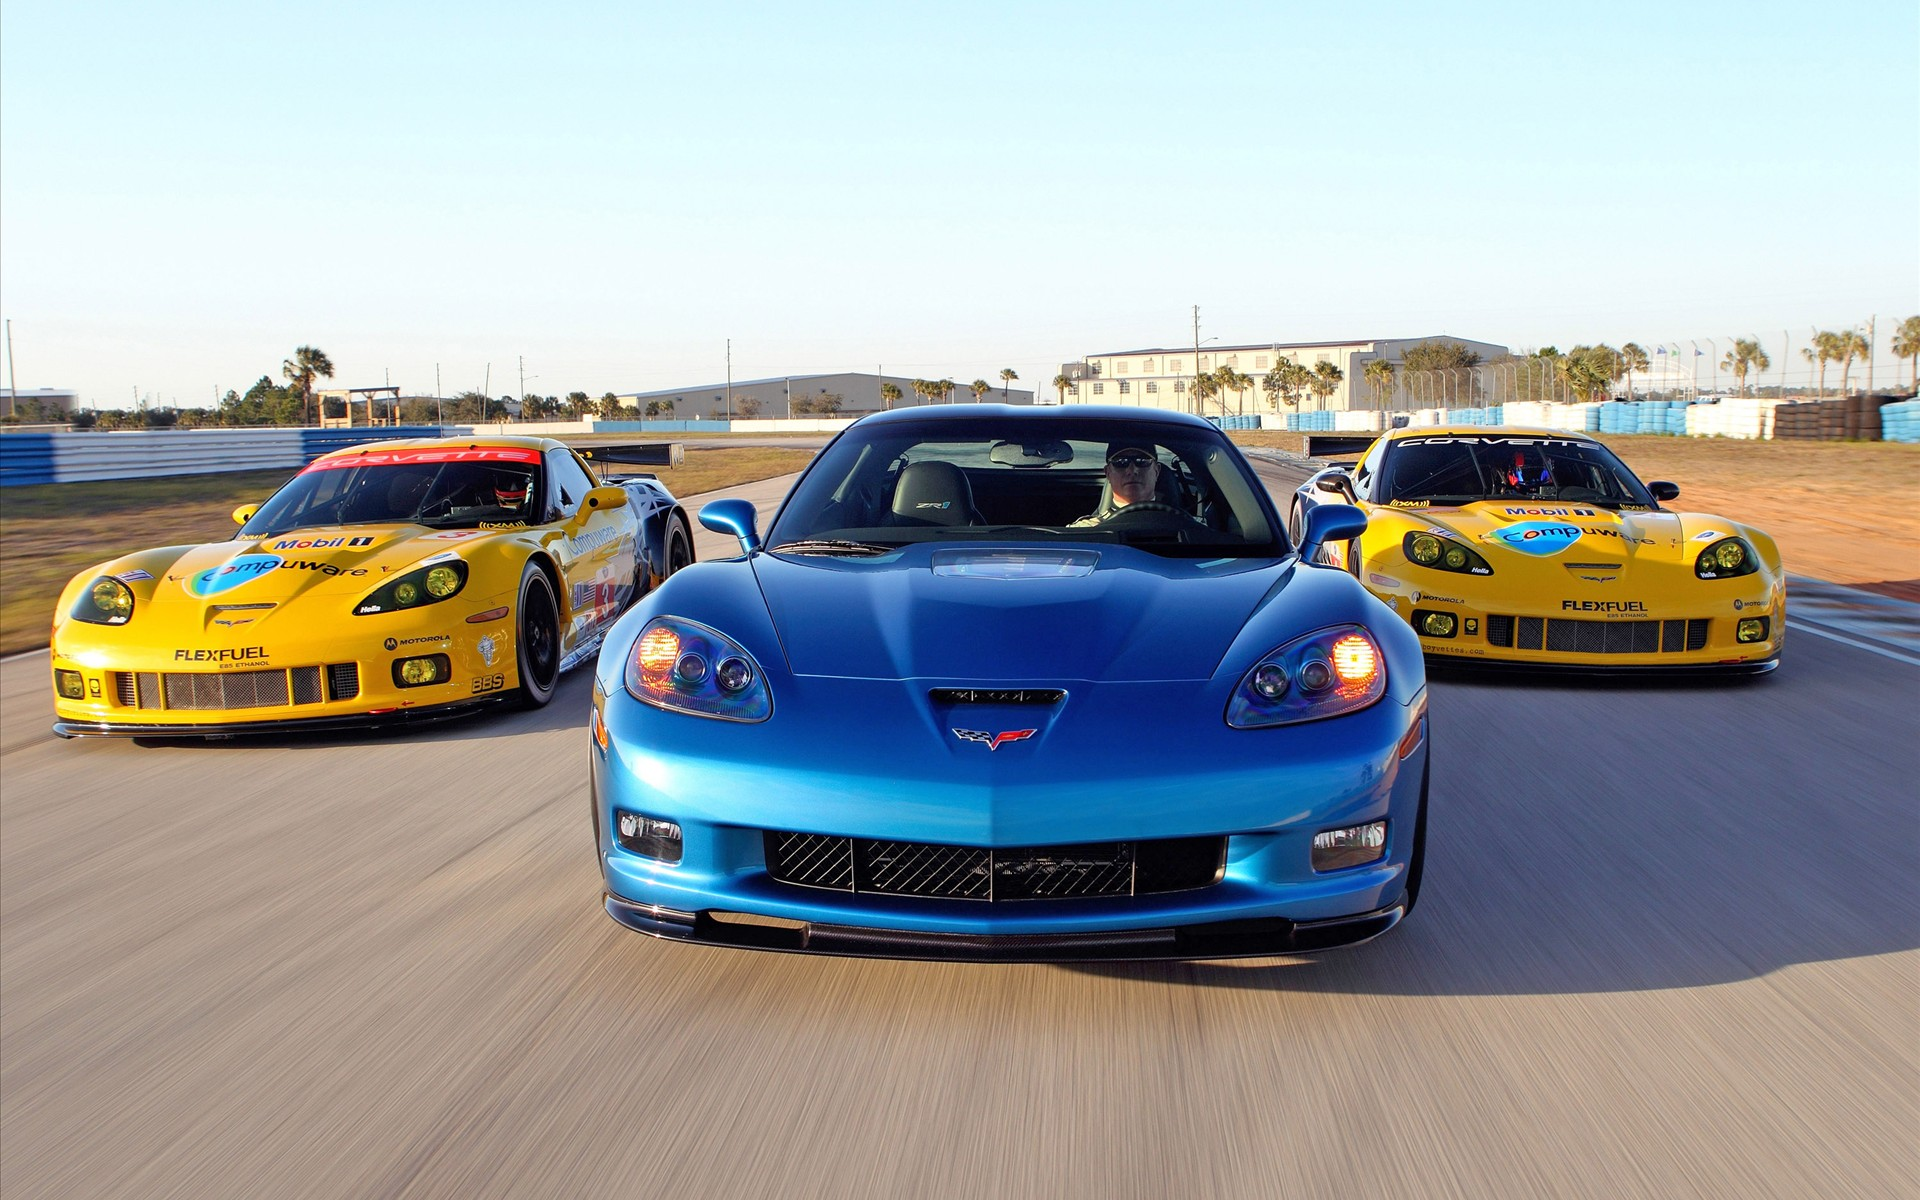 2010 Corvette C6 Wallpaper